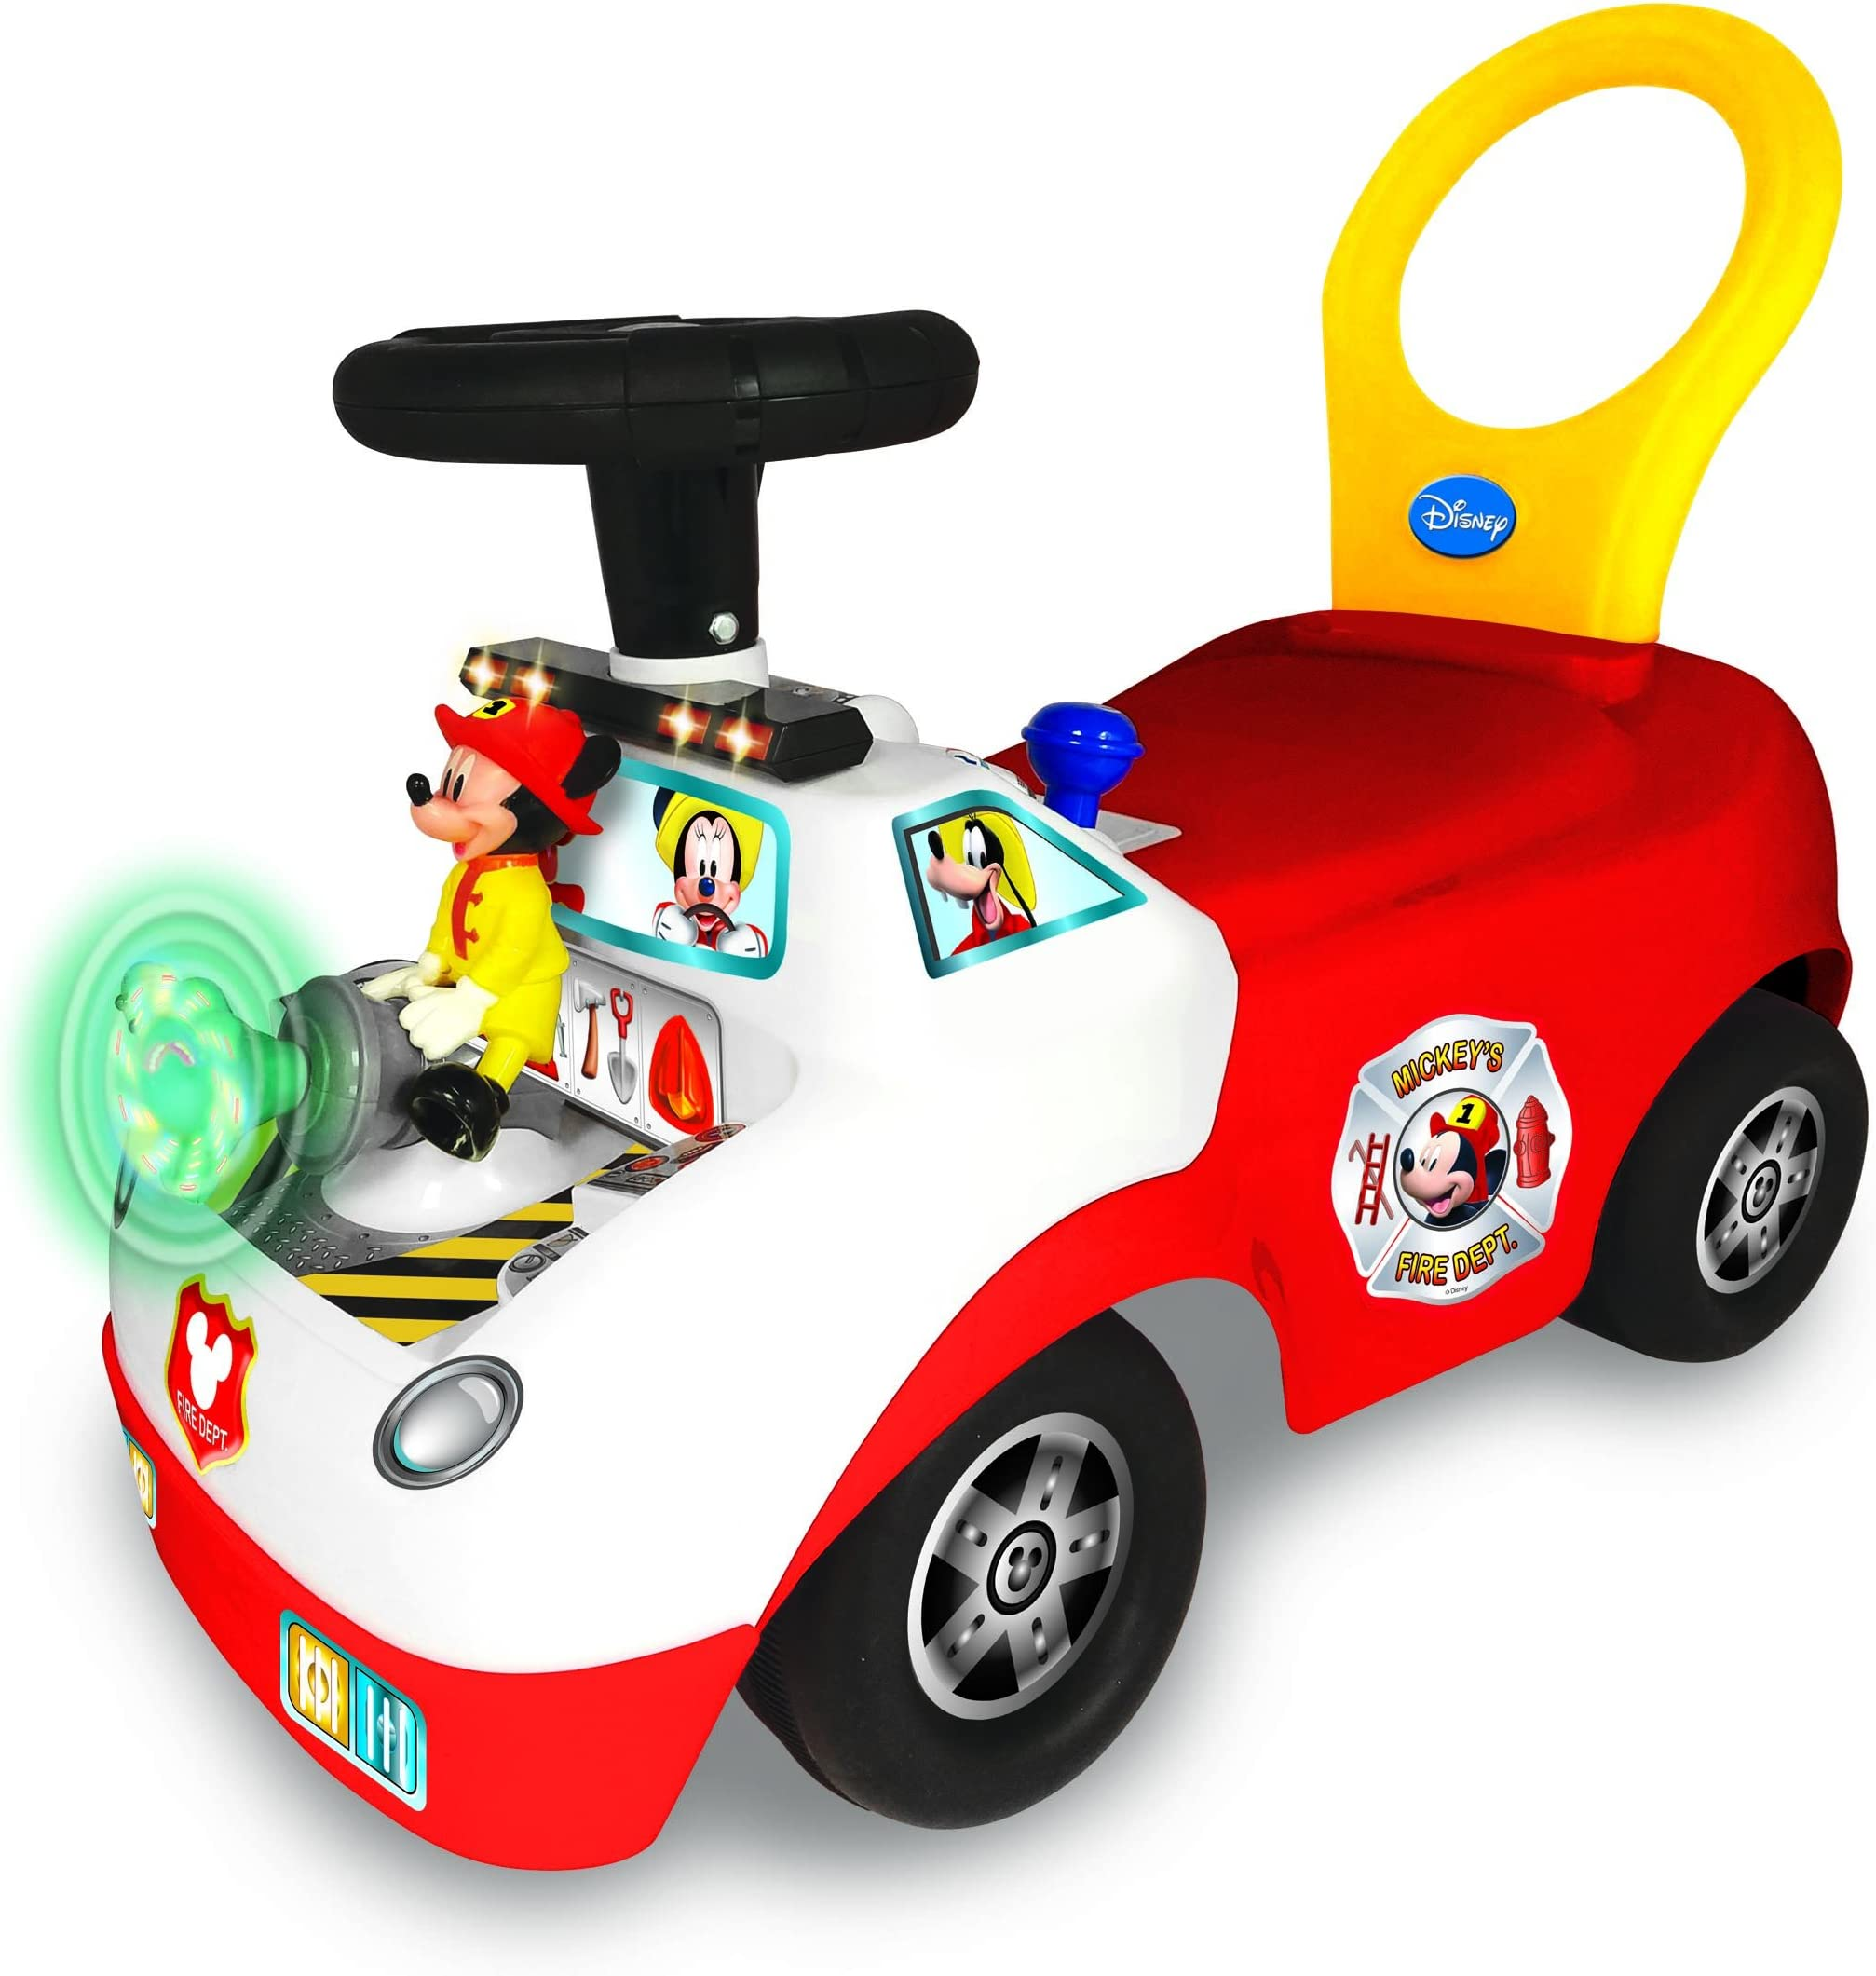 Kiddieland Disney Mickey Activity Fire Truck Ride-On